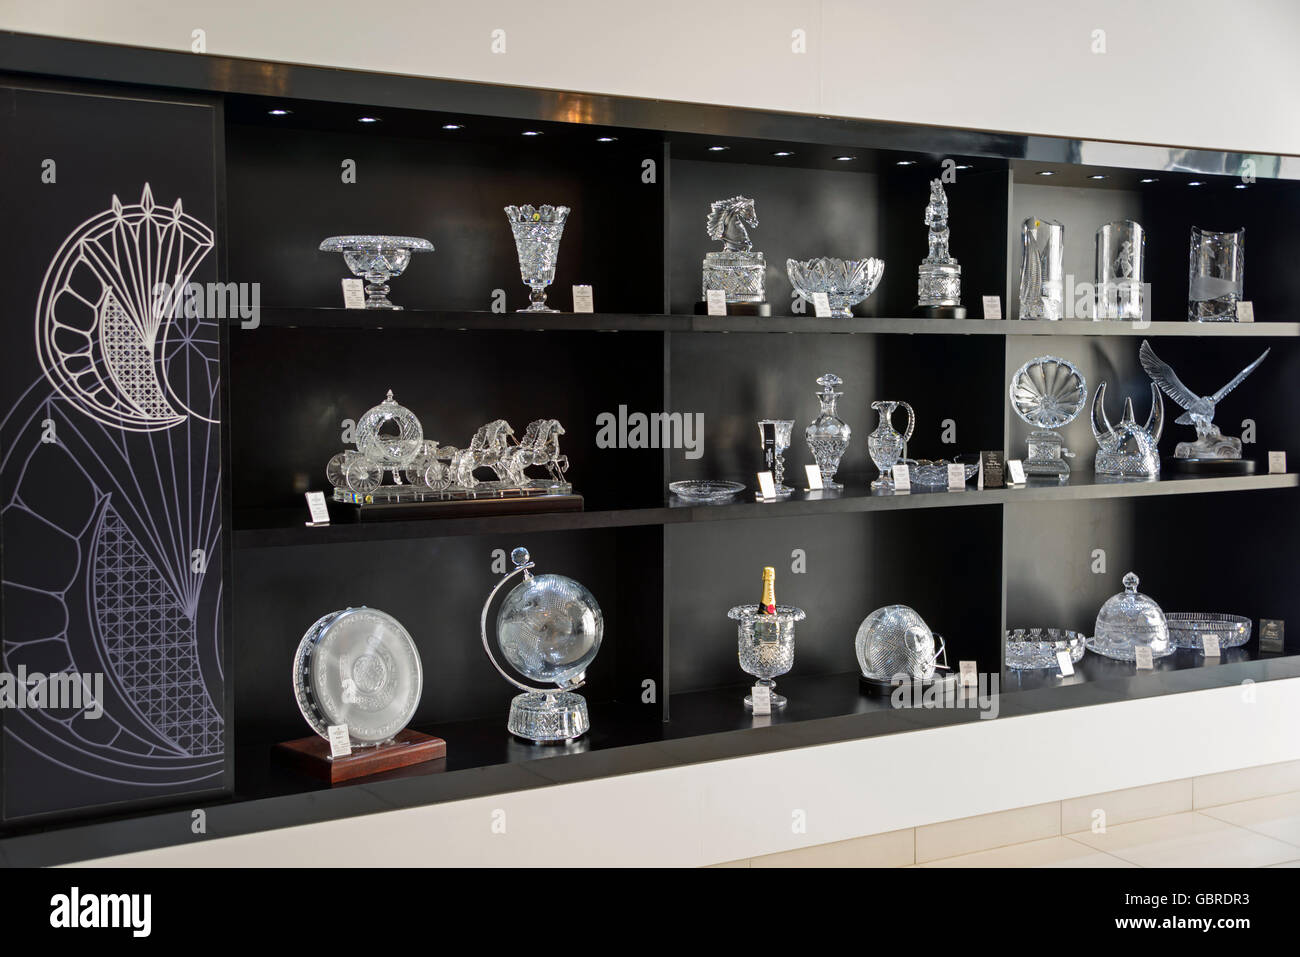 Crystal, House of Waterford Crystal, Waterford, Ireland - Stock Image